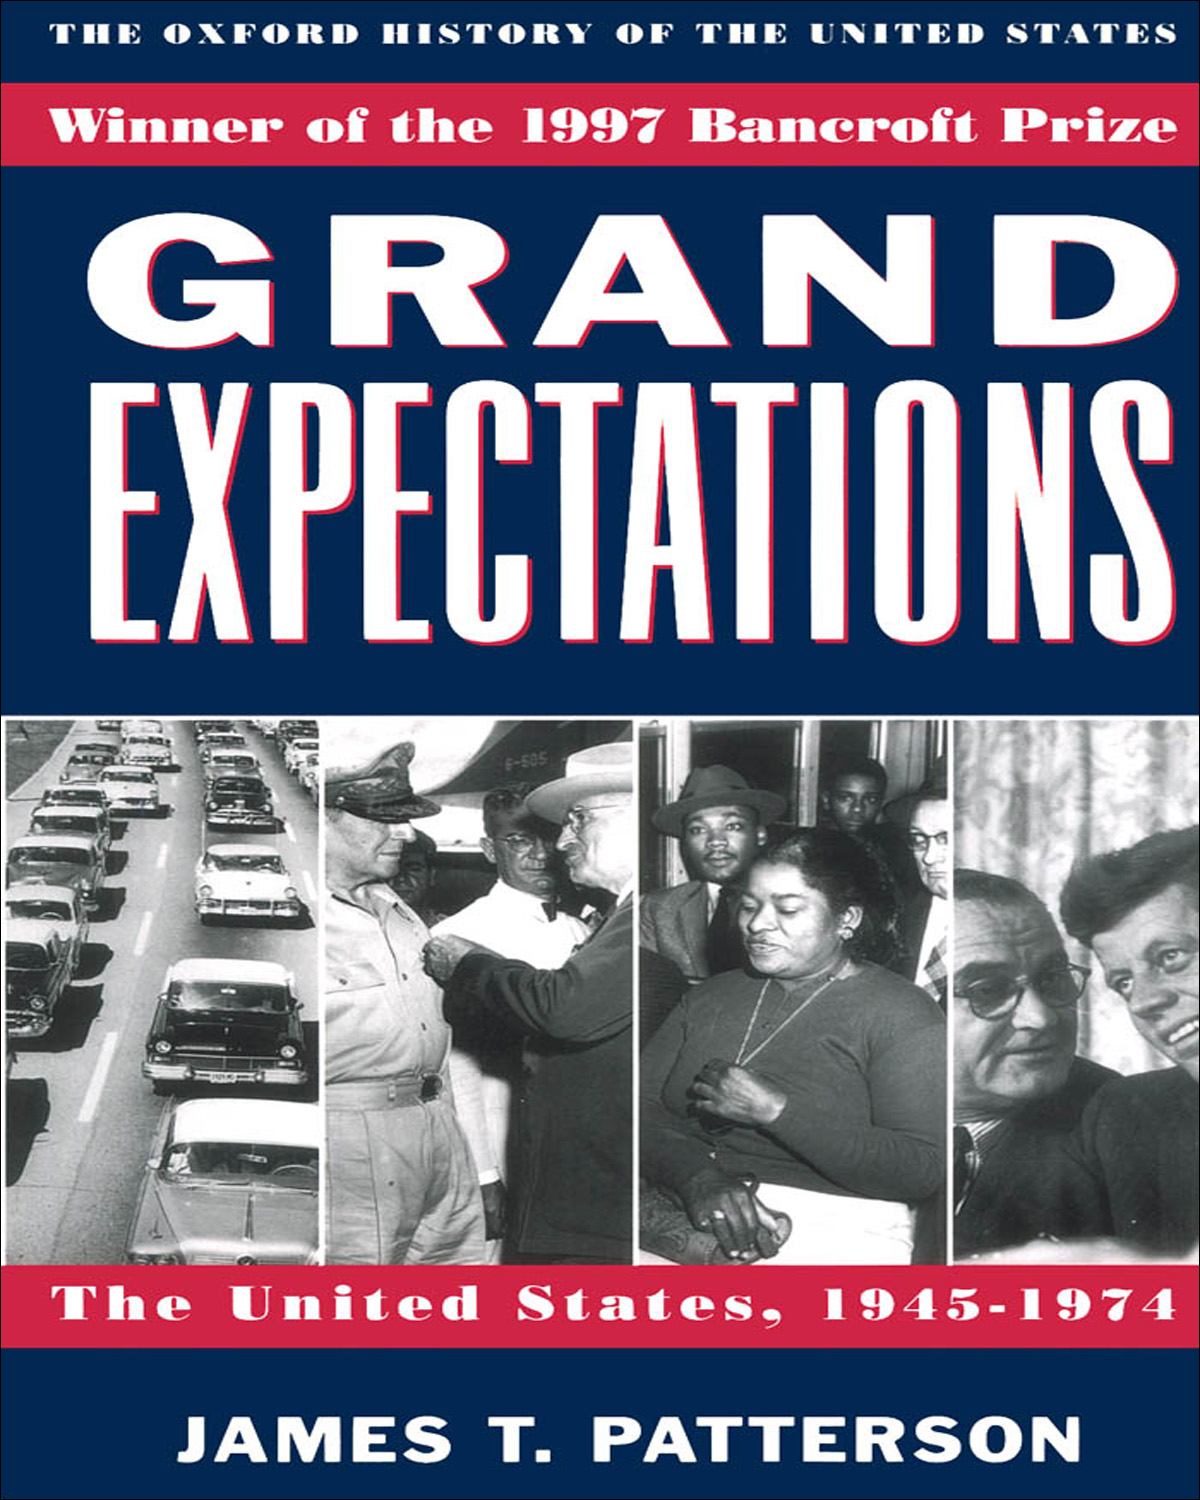 Grand Expectations:The United States, 1945-1974